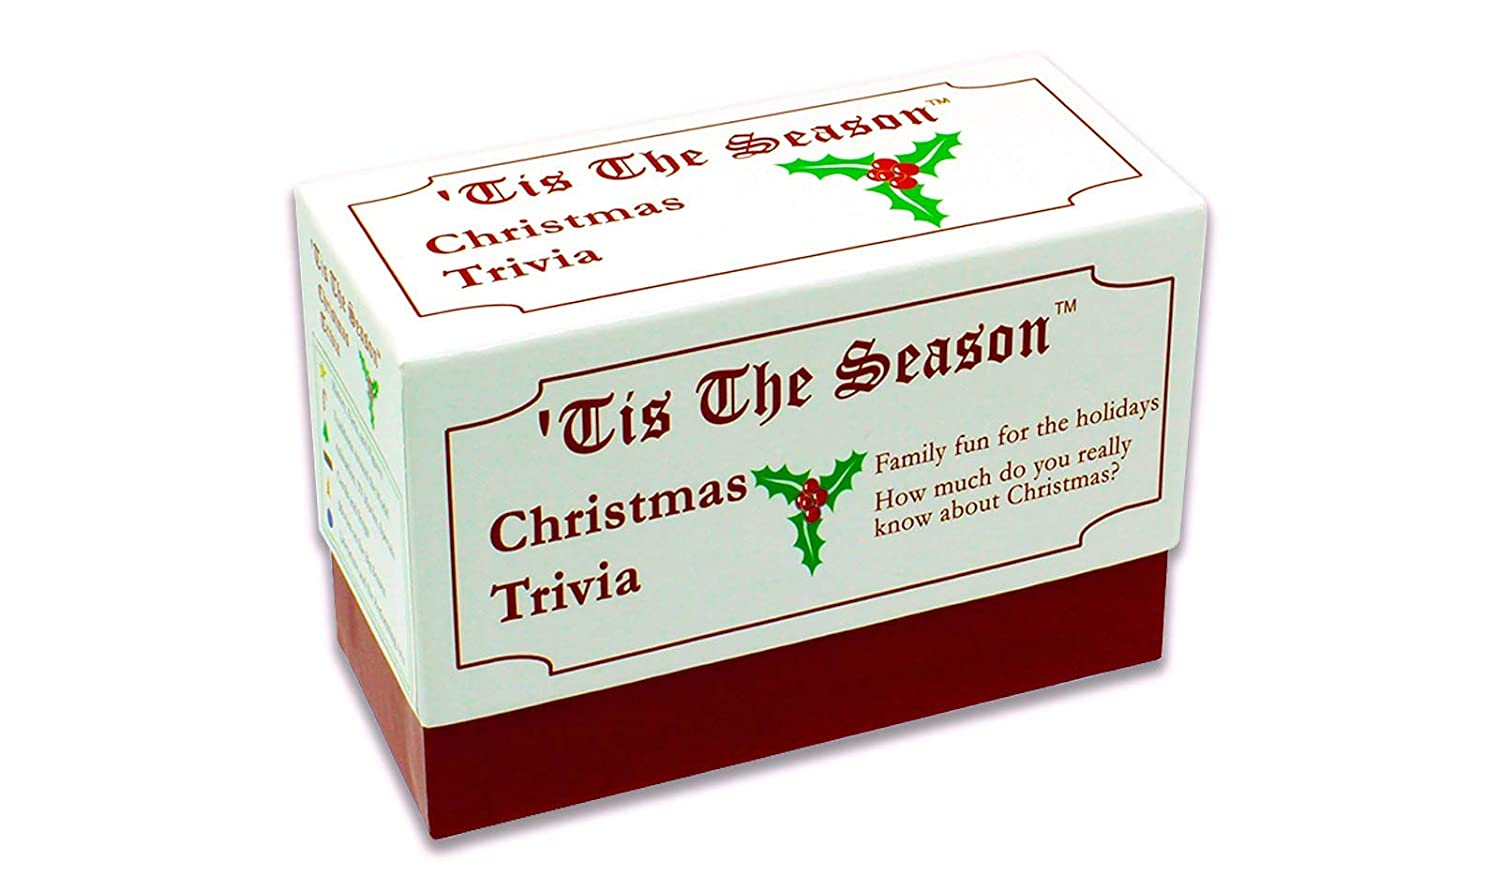 Amazon.com: Tis The Season Christmas Trivia Game - The Classic and ...